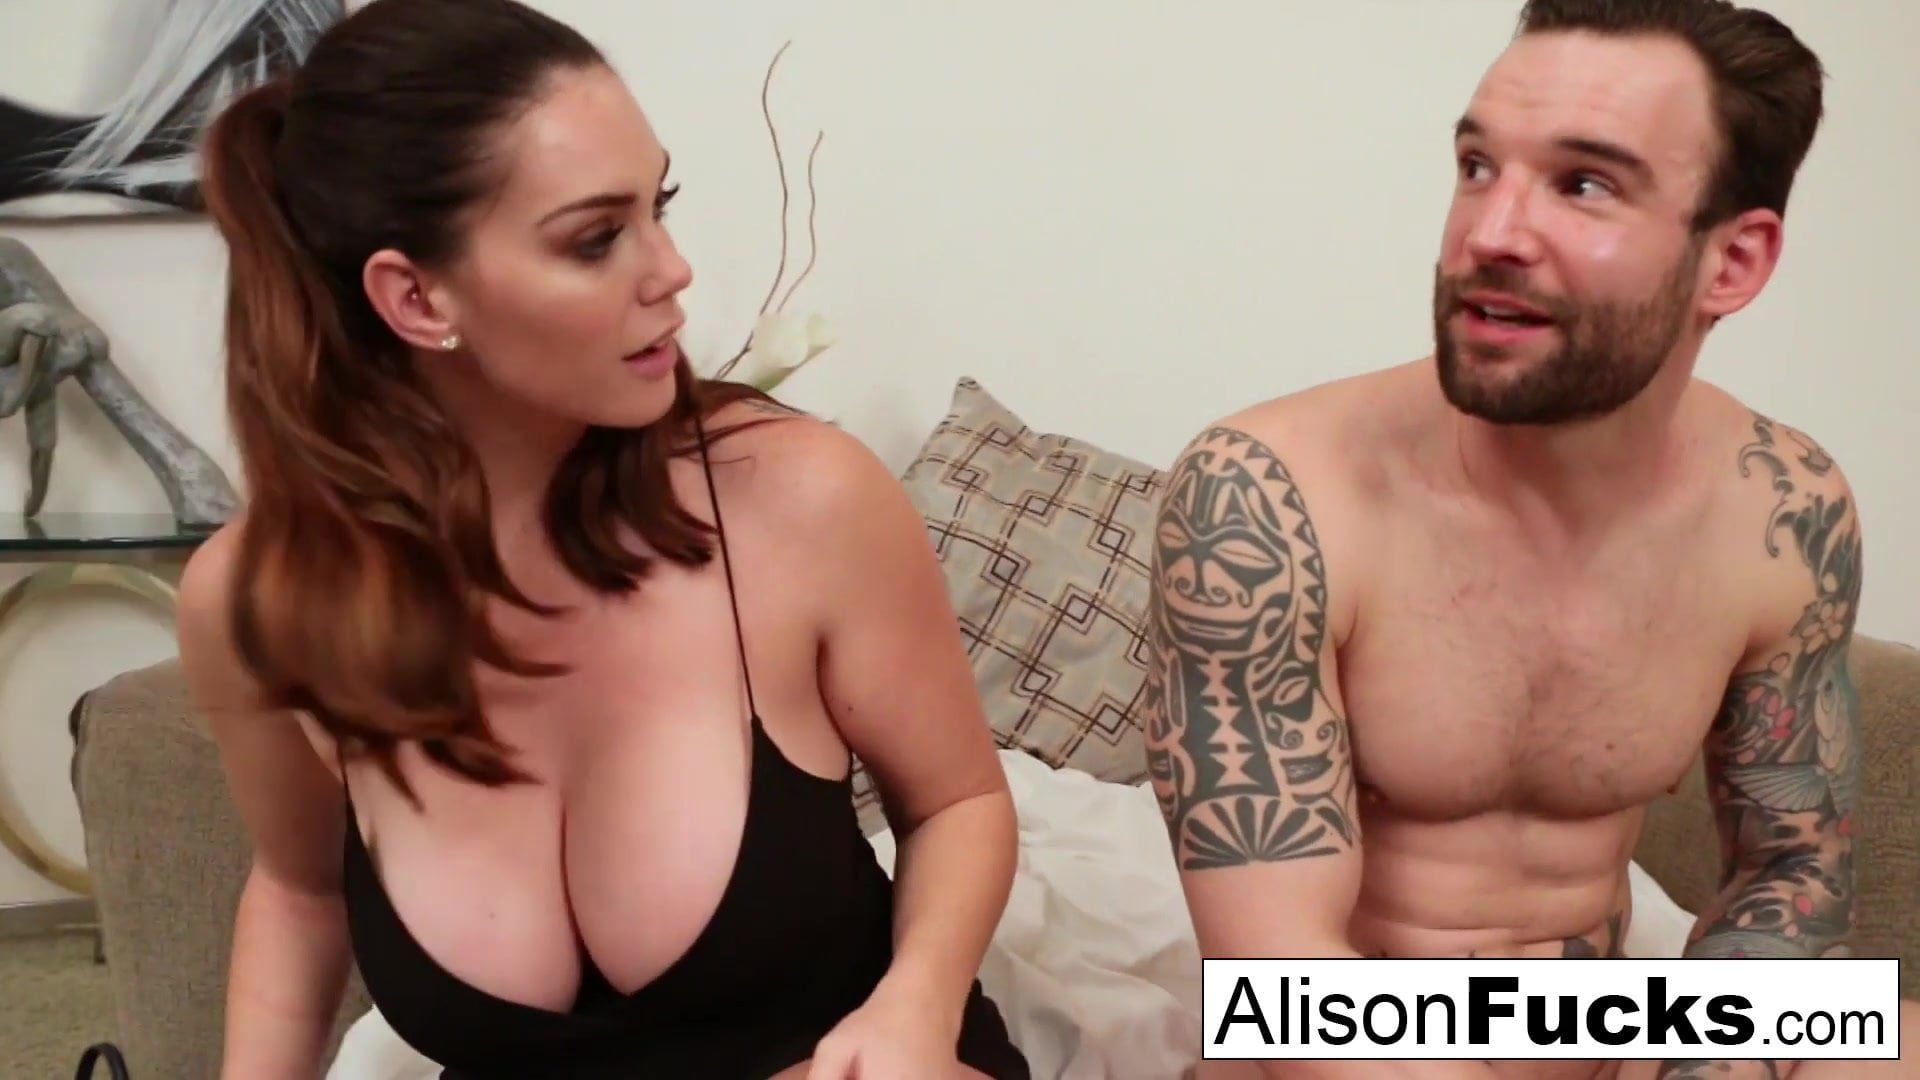 Alison Tyler My Wifes Hot Friend busty alison tyler meets her catfish then fucks his roomate